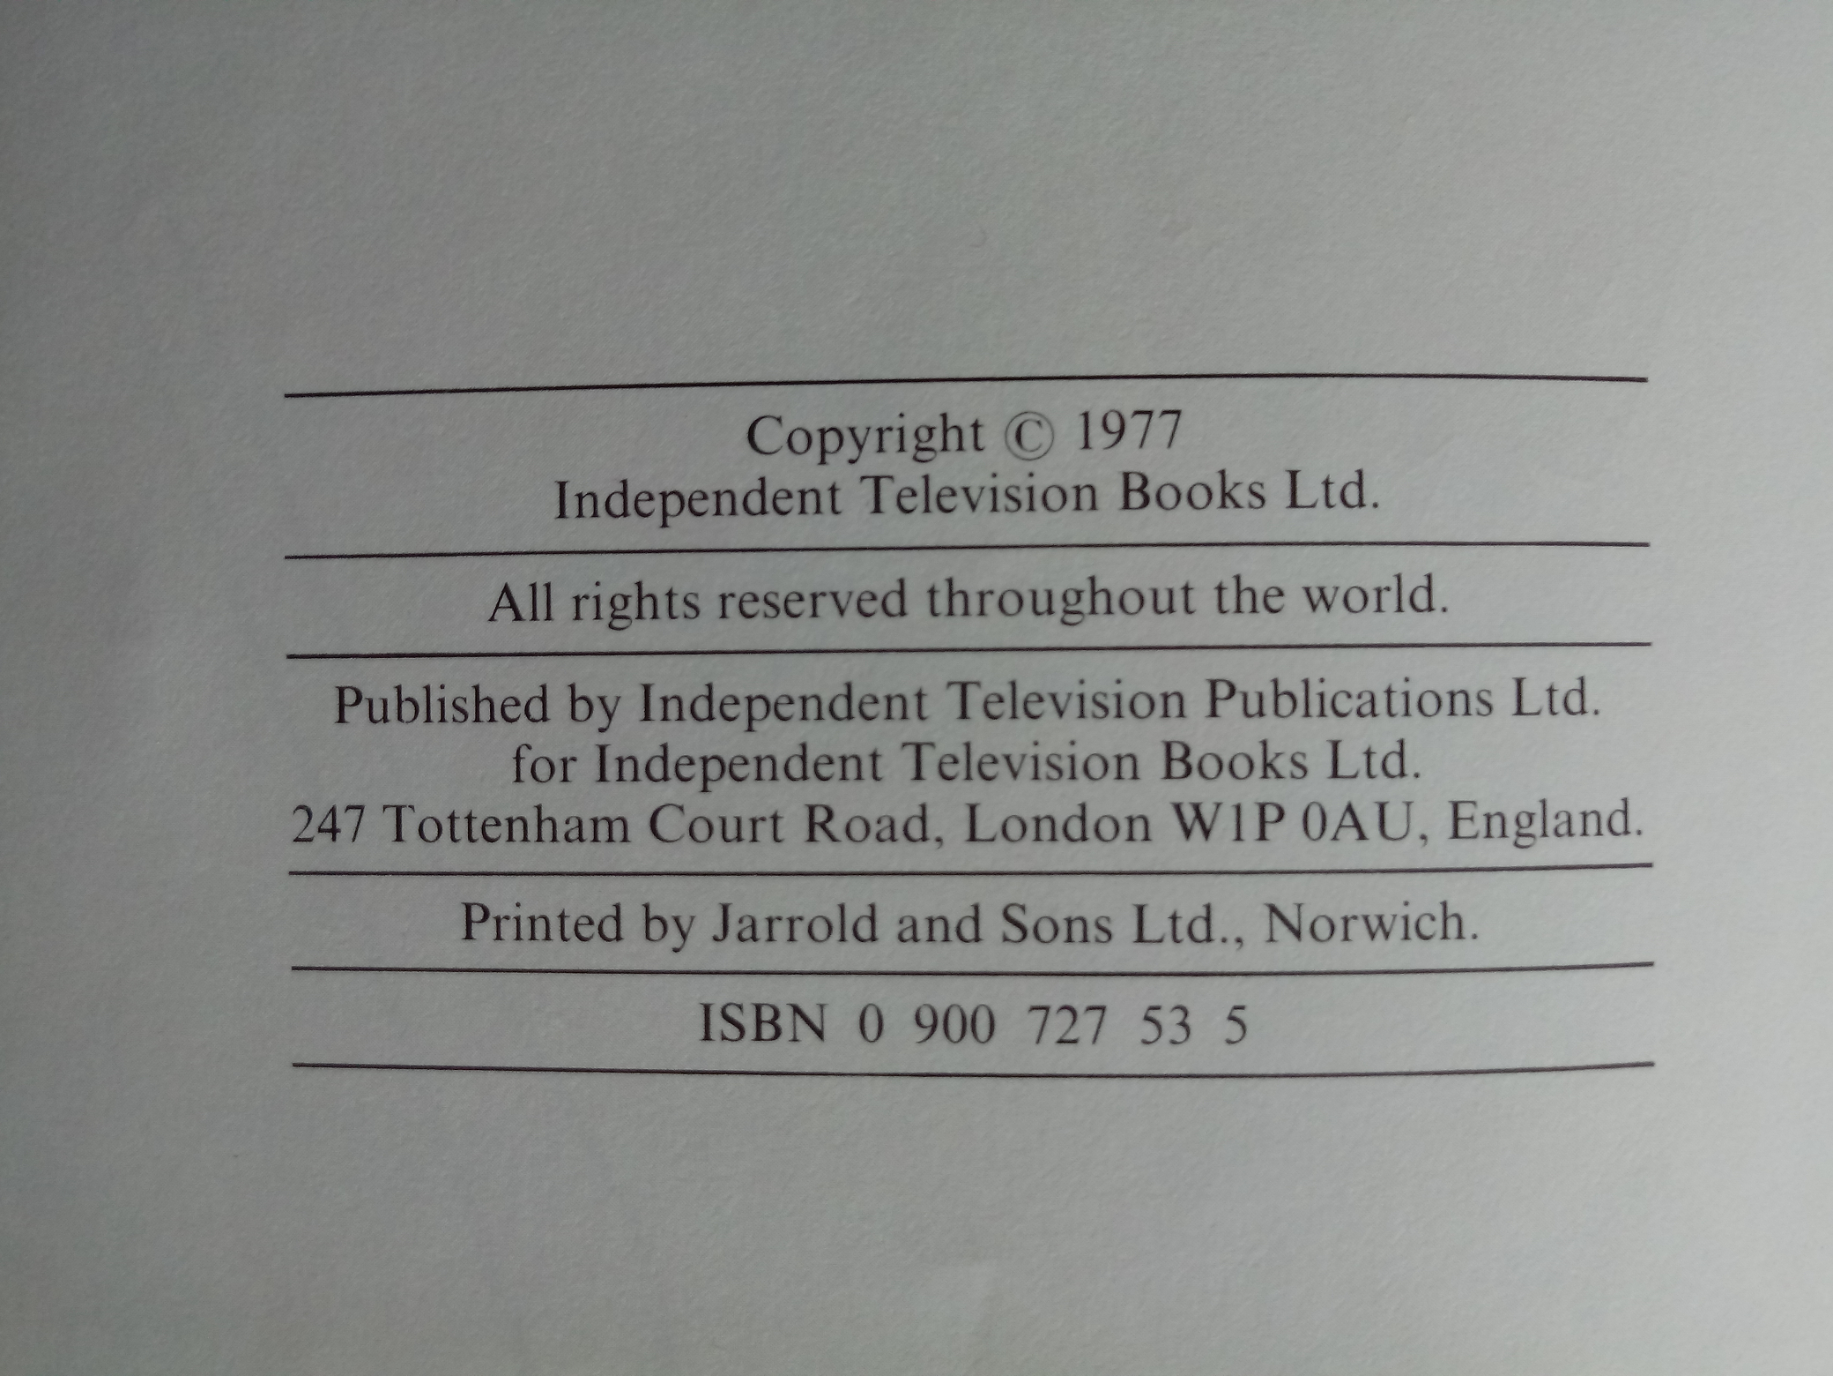 Look-In Television Annual hardback book 77 pages Published 1977 Independent Television - Image 3 of 3